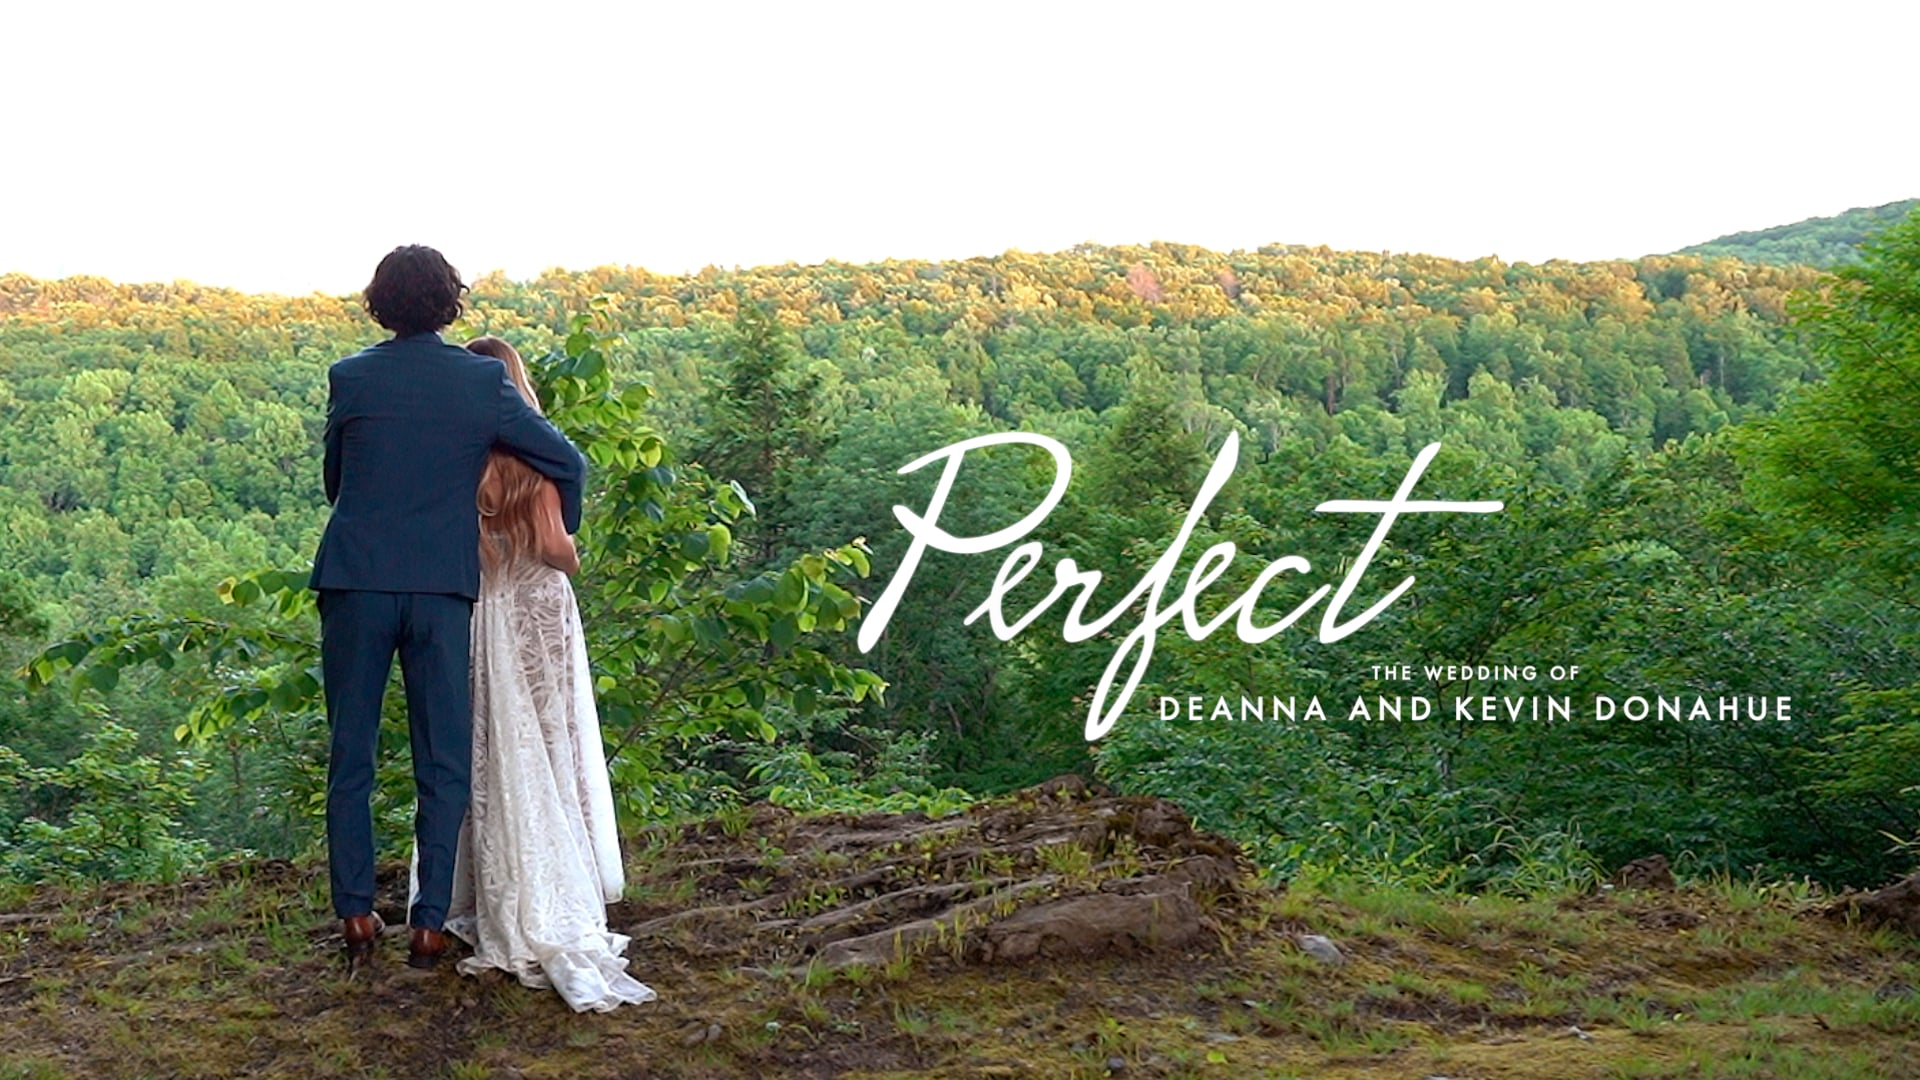 Perfect: The Wedding of Deanna and Kevin